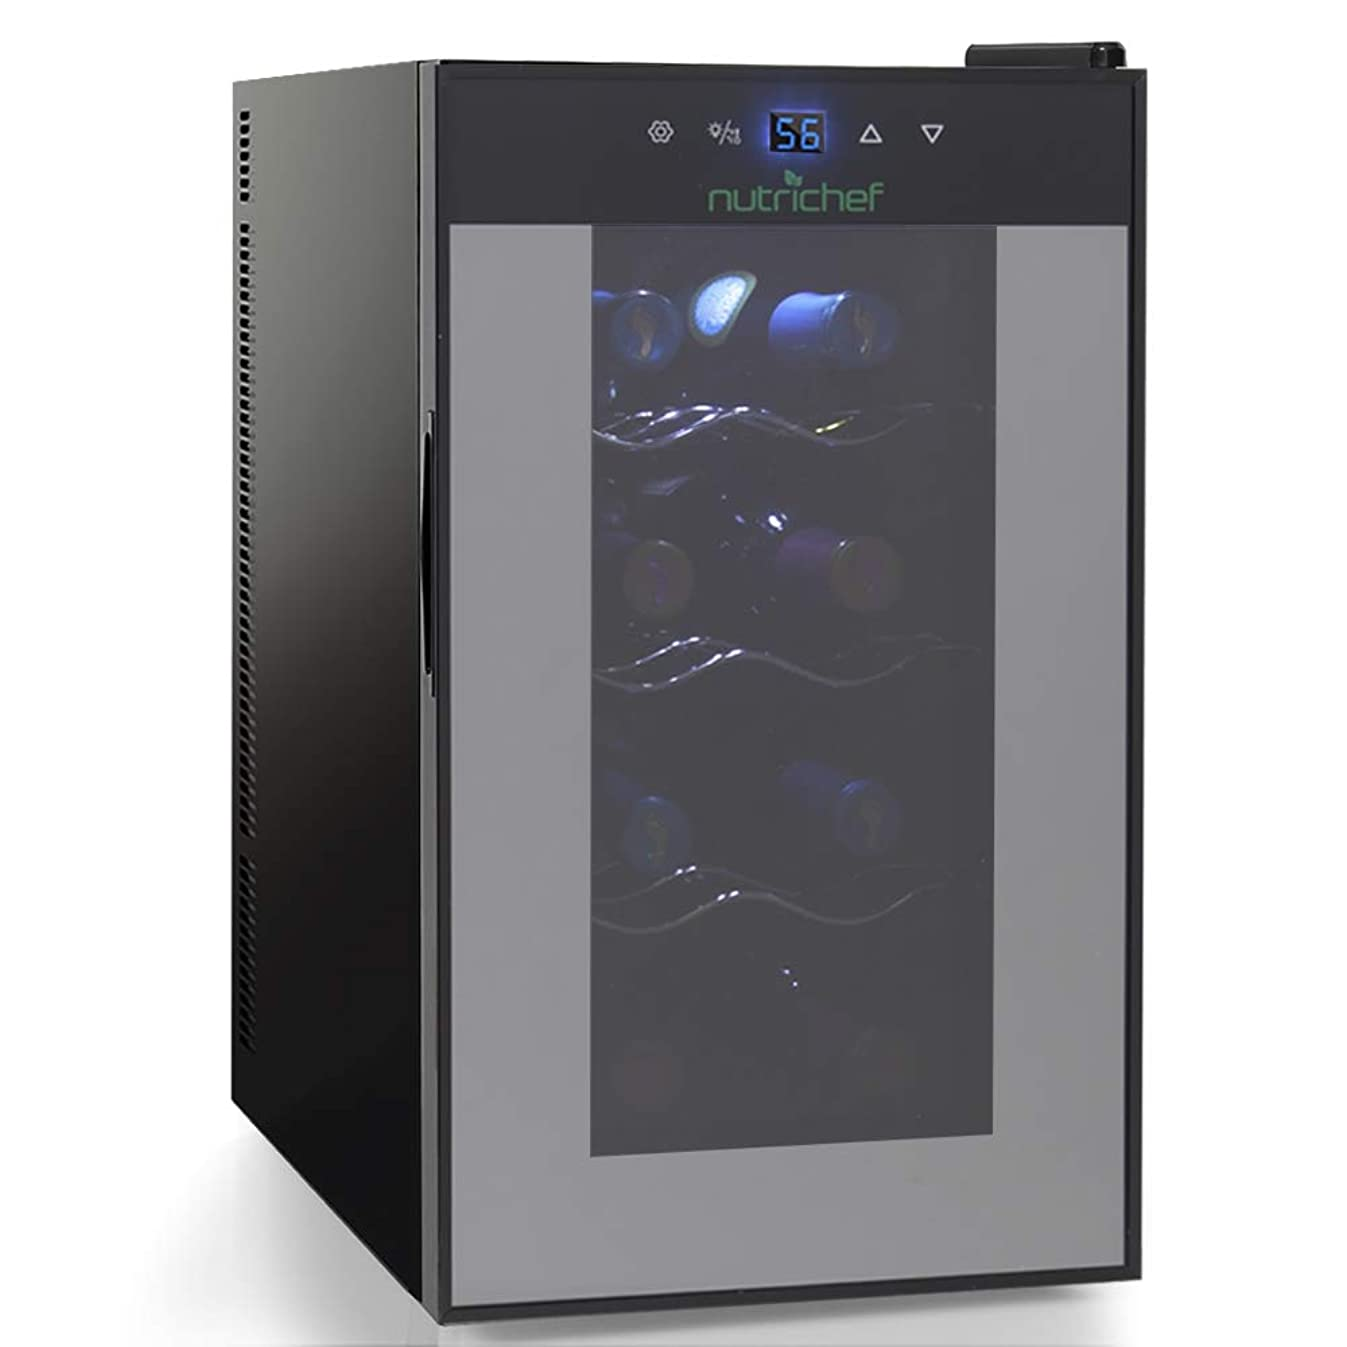 Nutrichef 8 Bottle Thermoelectric Wine Cooler Refrigerator | Red, White, Champagne Chiller | Counter Top Wine Cellar | Quiet Operation Fridge | Touch Temperature Control